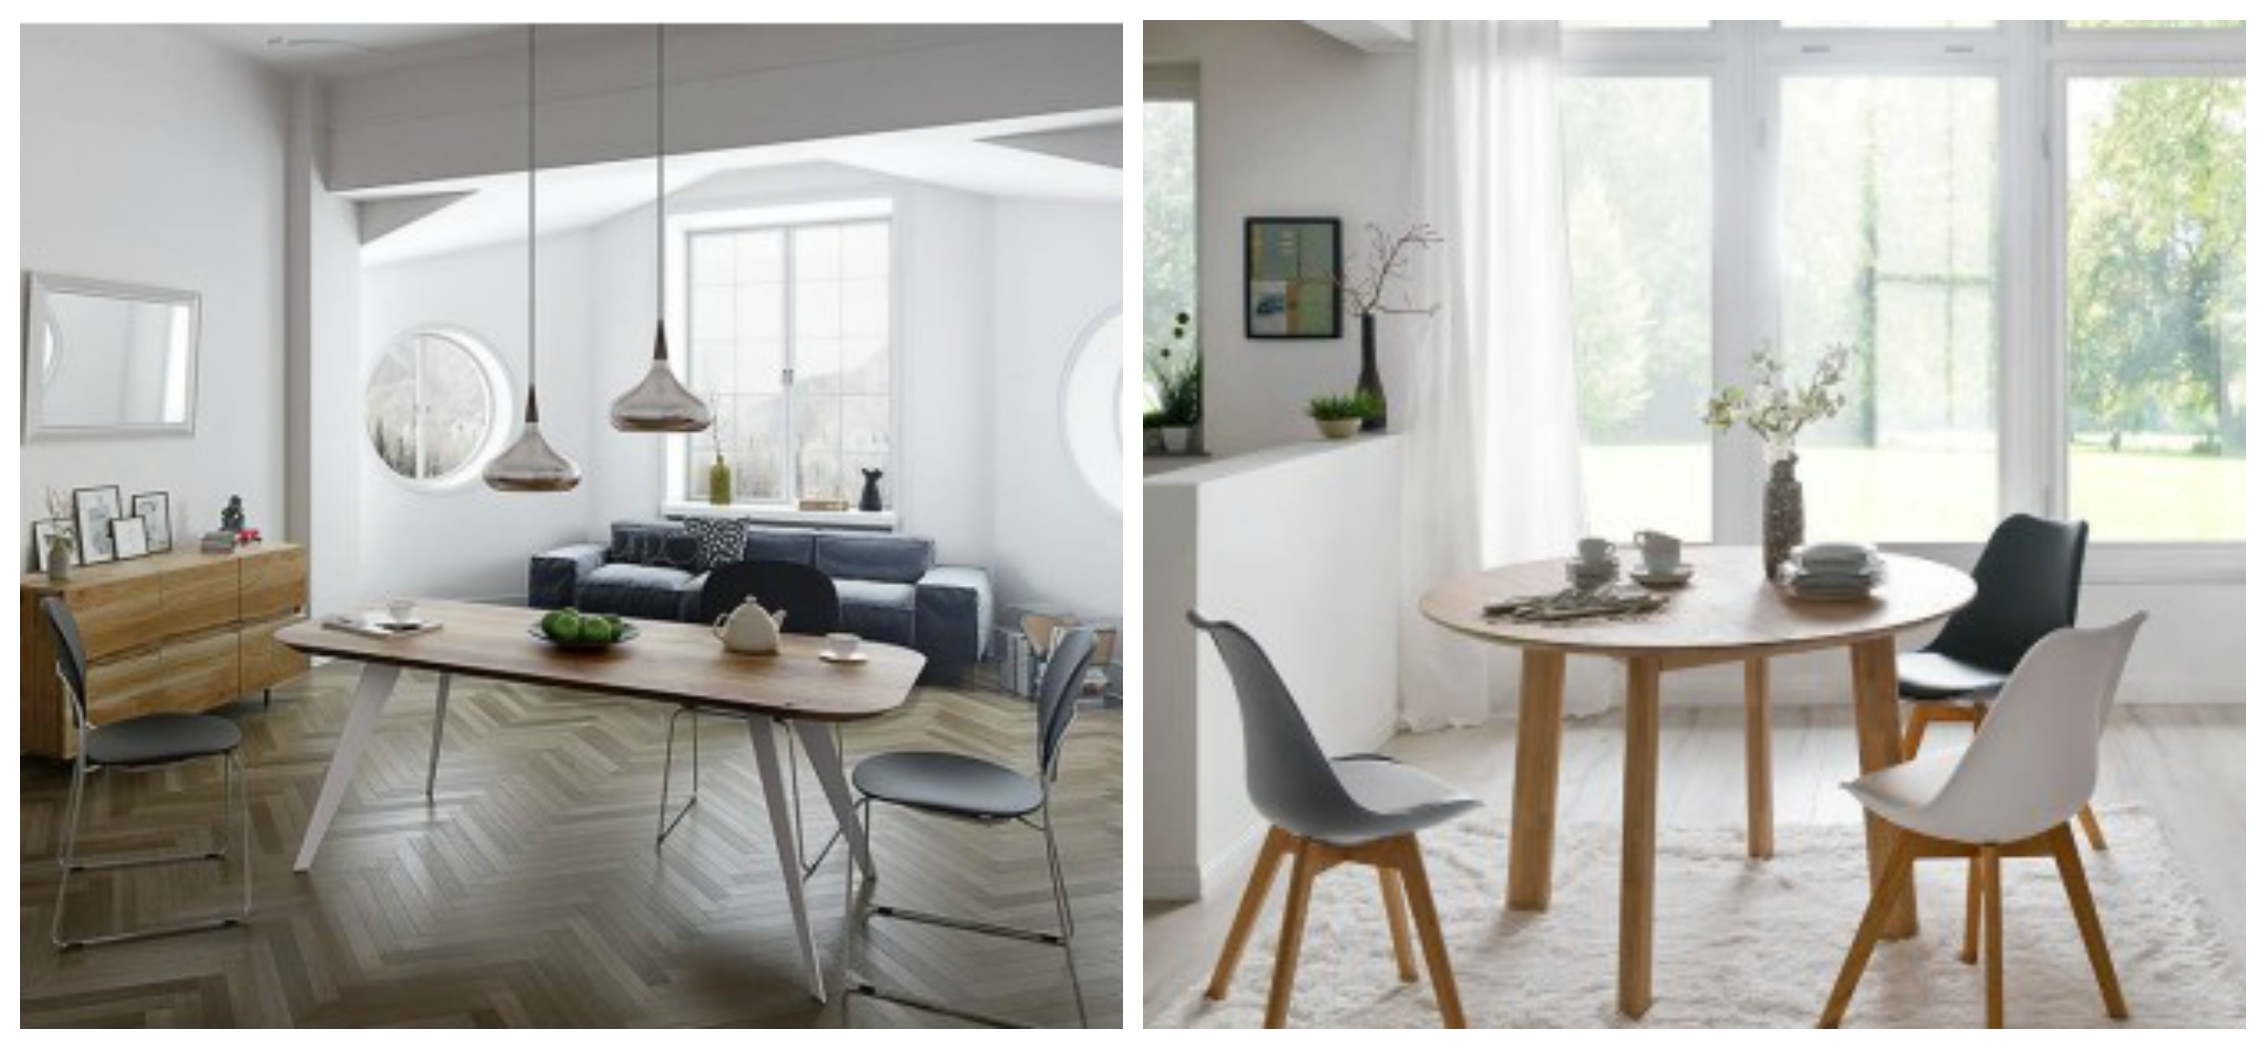 What dining room table should you choose?